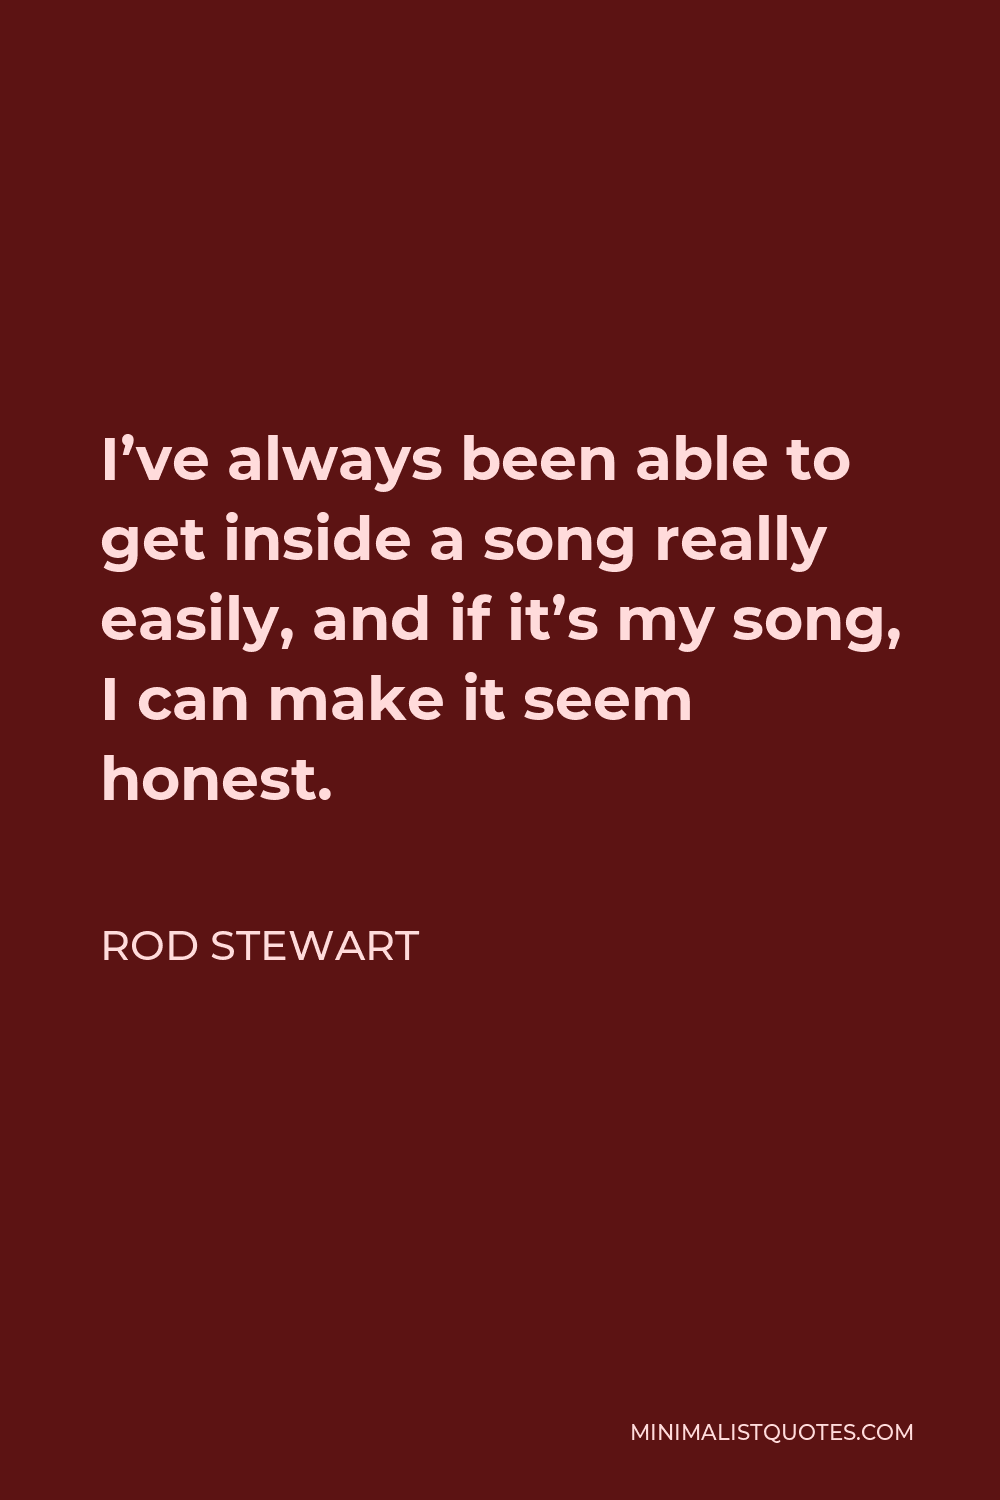 Rod Stewart Quote - I've always been able to get inside a song really easily, and if it's my song, I can make it seem honest.